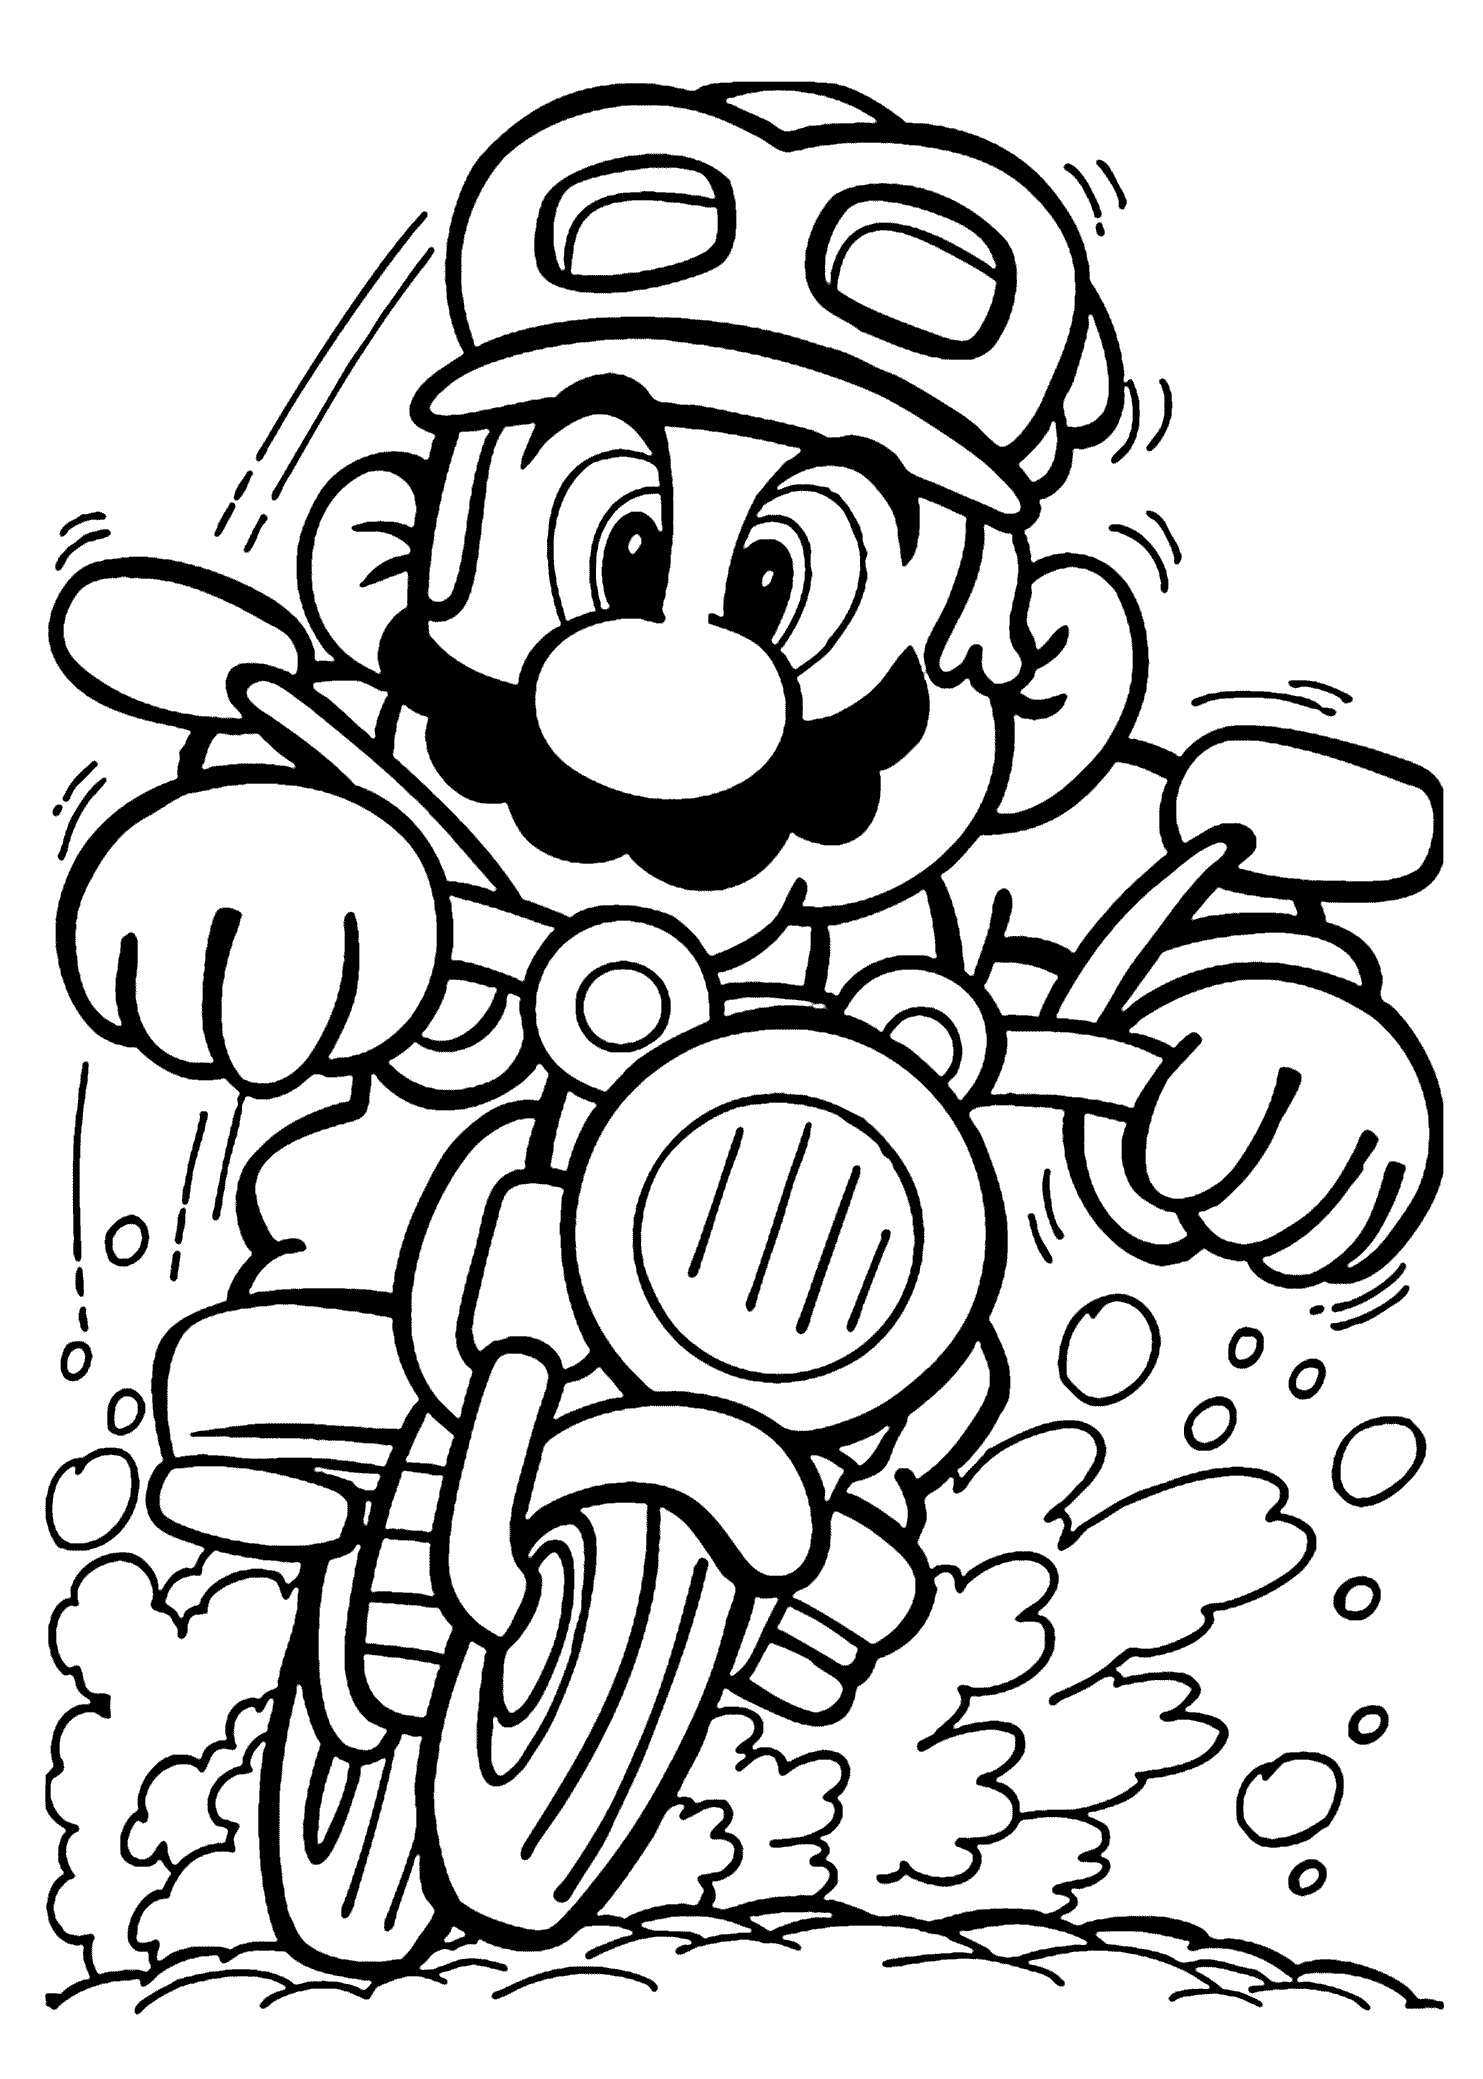 mario kart 8 coloring pages mario kart 8 coloring pages free download on clipartmag kart pages 8 coloring mario